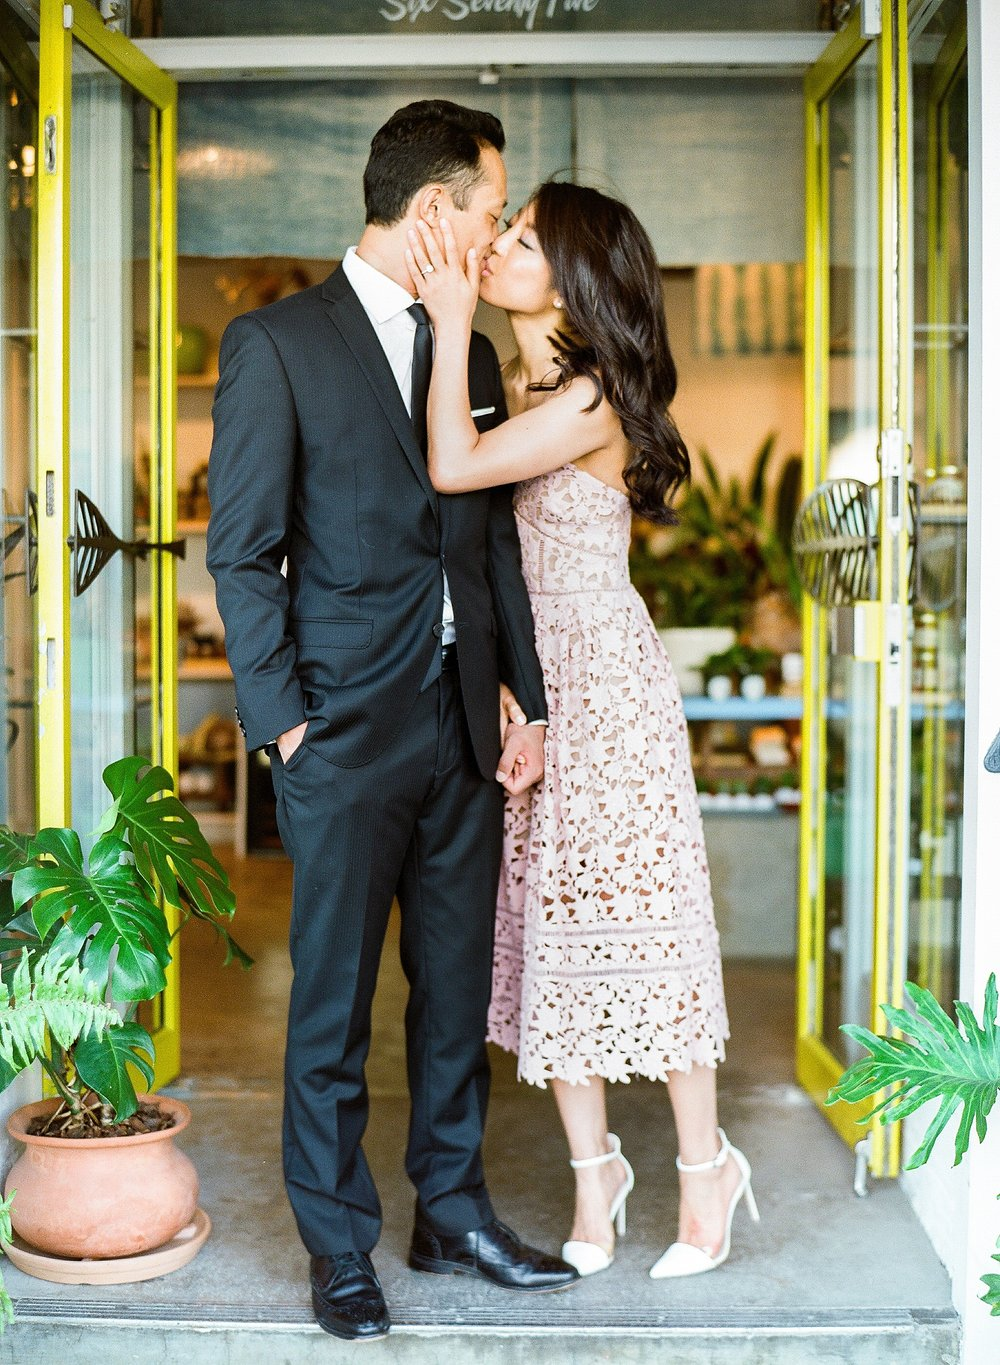 Paiko Honolulu Hawaii Engagement Photo